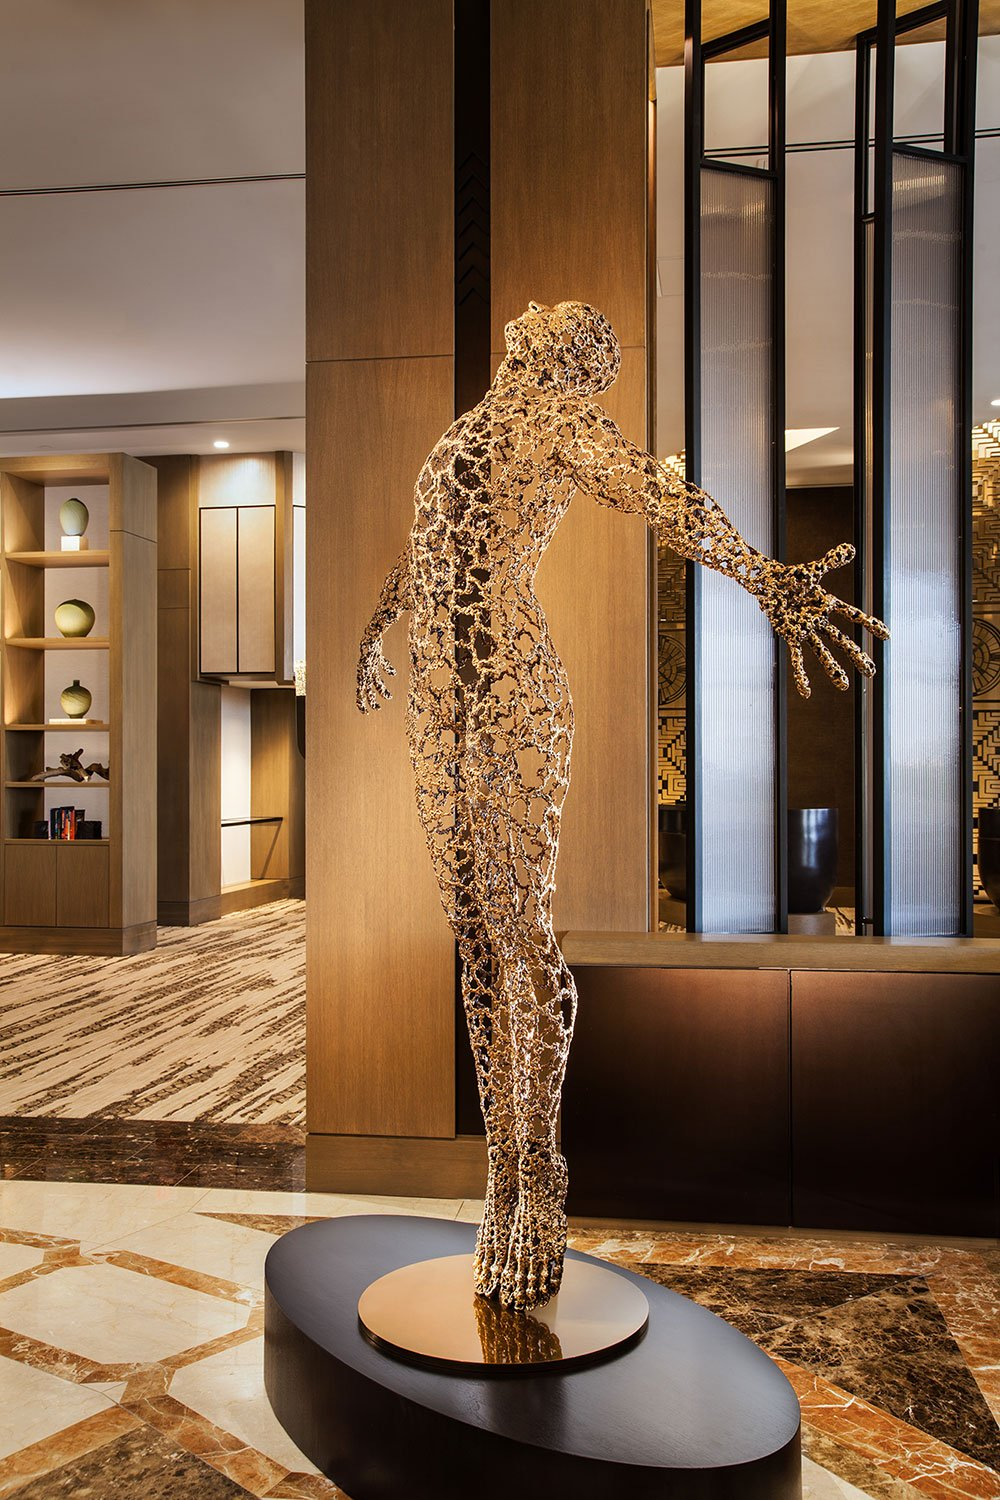 The Solaris statue greets guests as they enter the lobby.